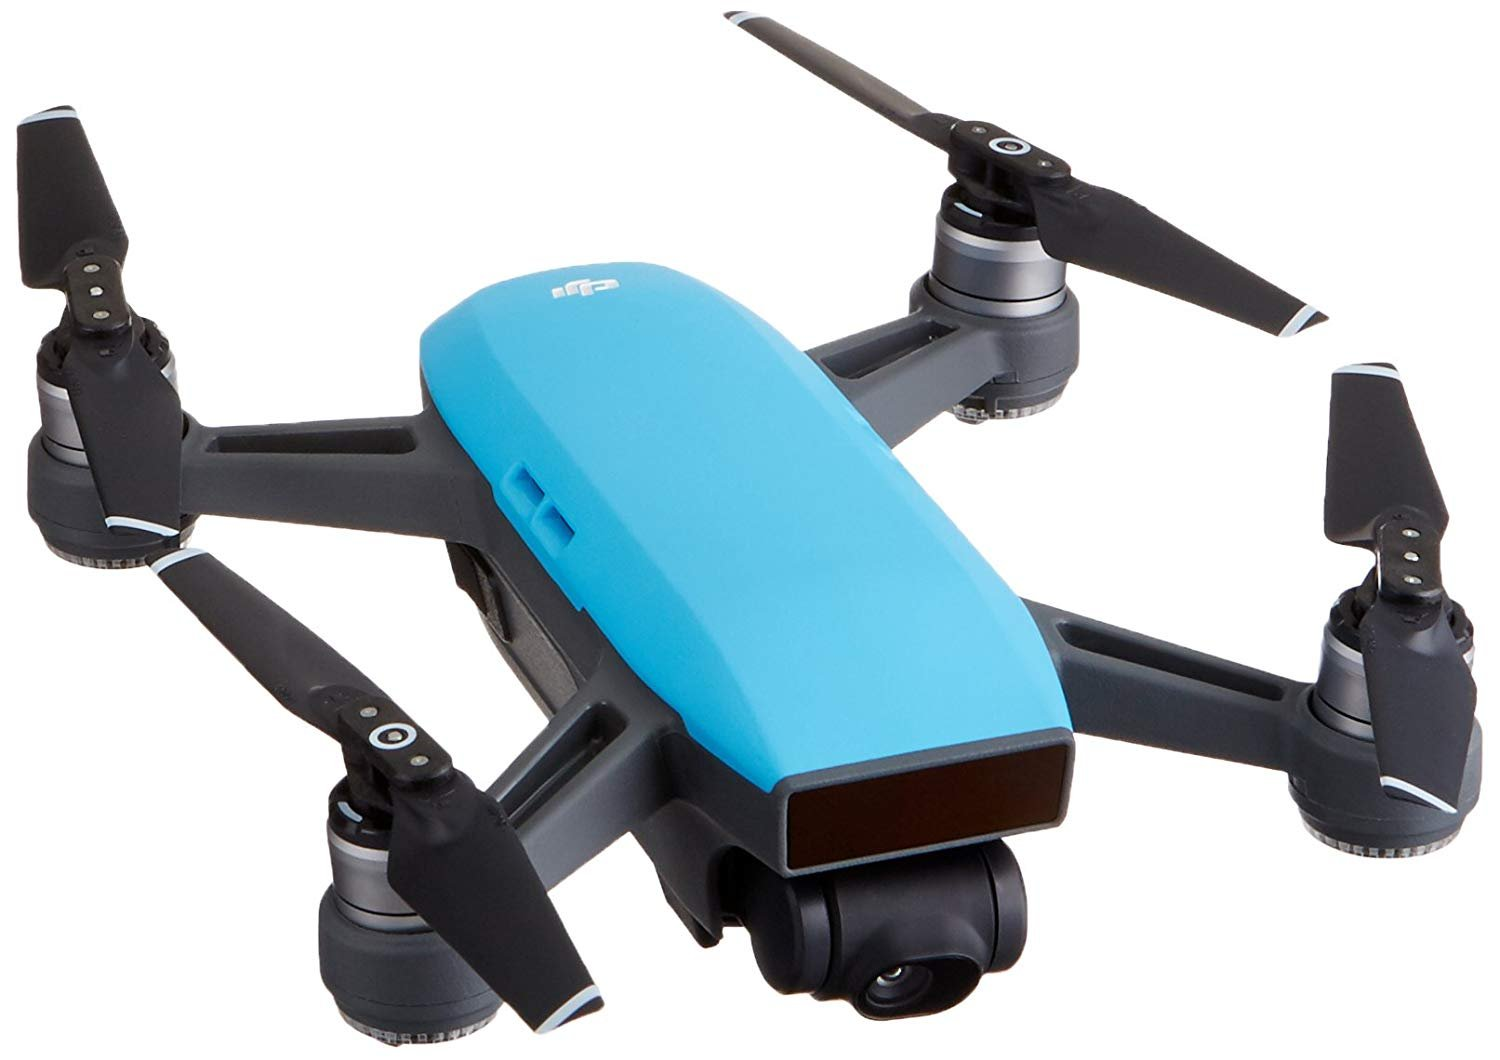 The Best Drones For Beginners: Get Started Shopping Here